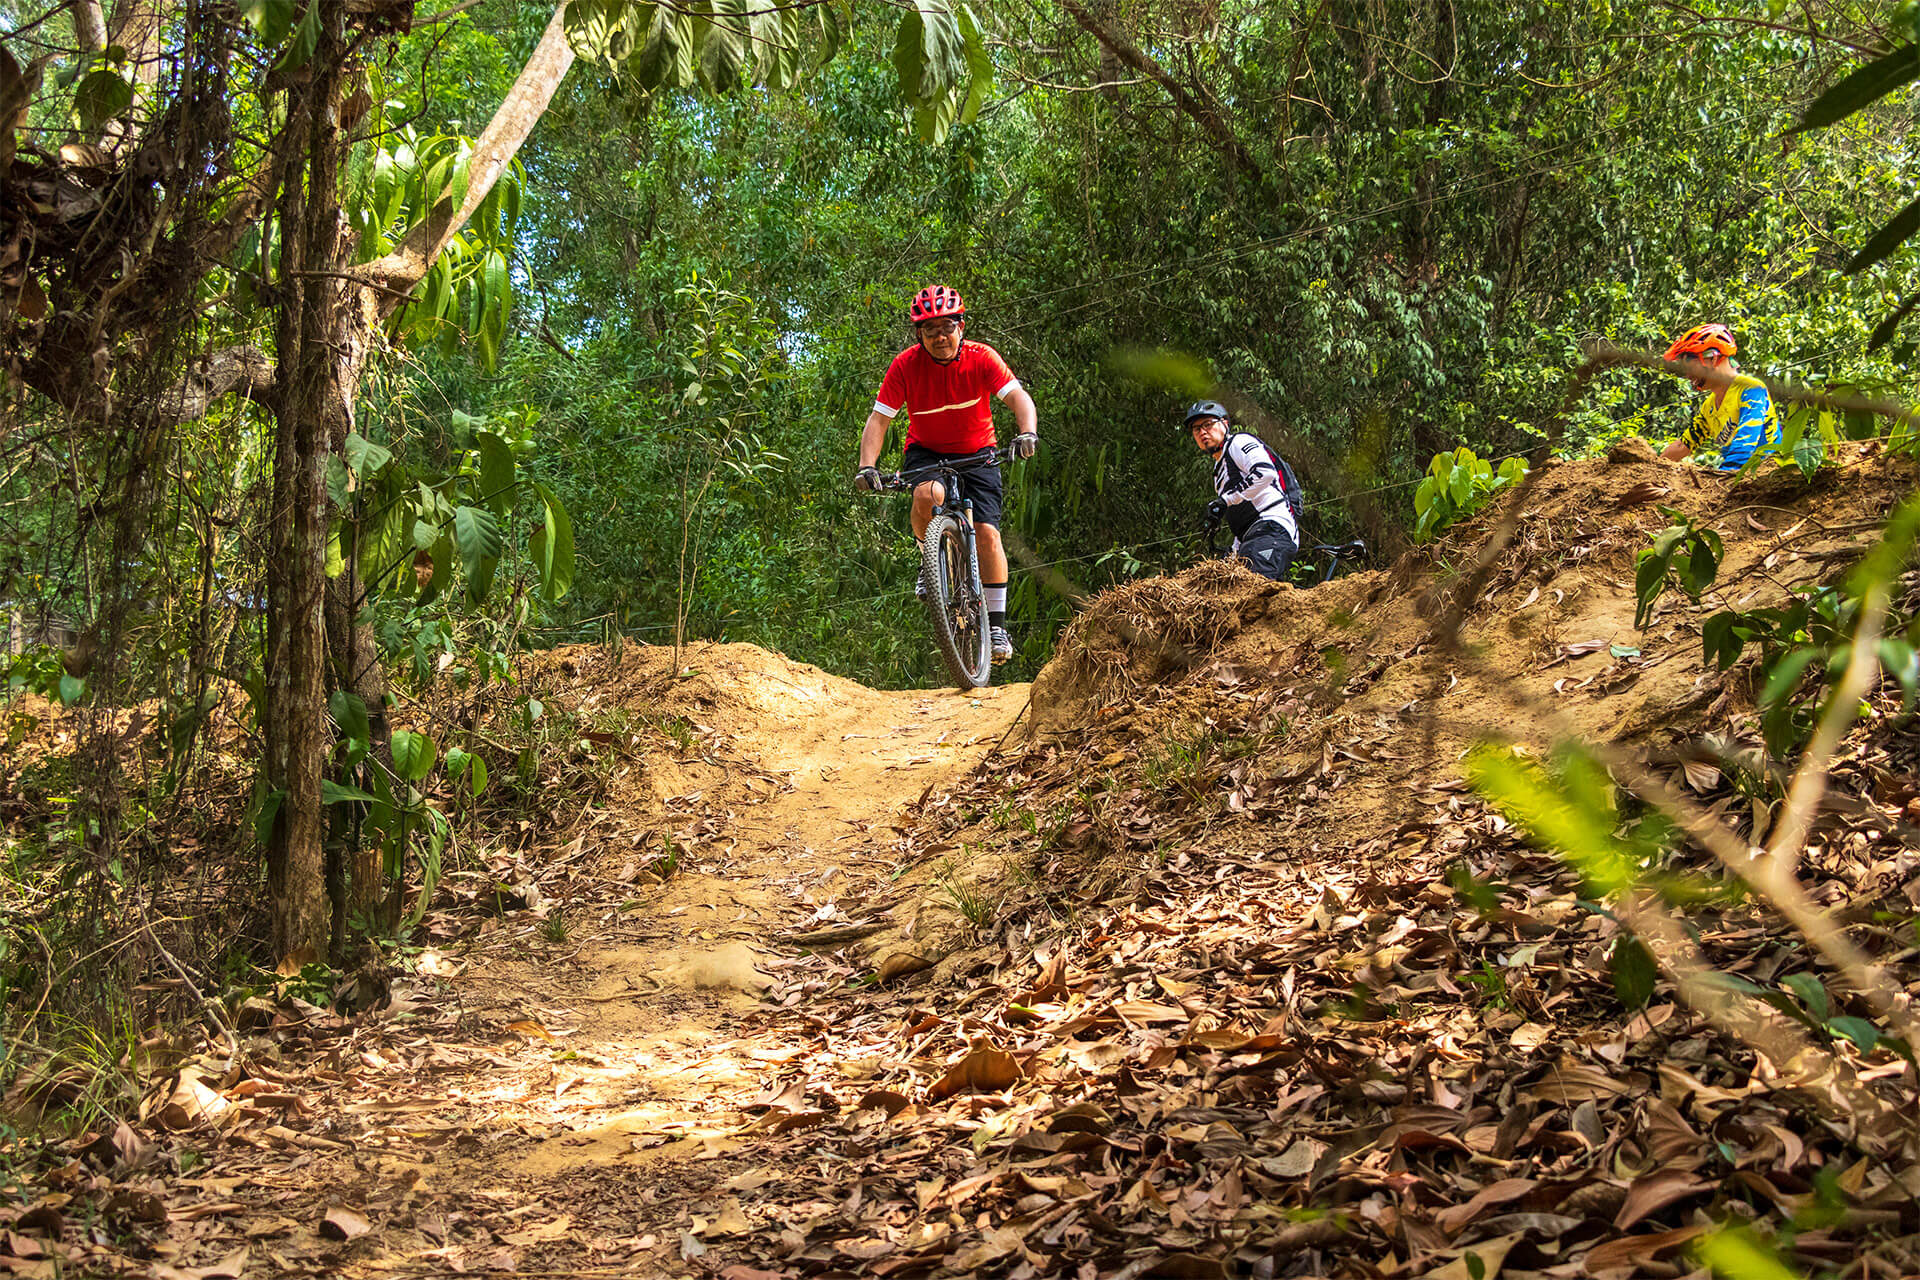 Agu Paiso and other cyclists traversing the Guimaras mountian-bike trail